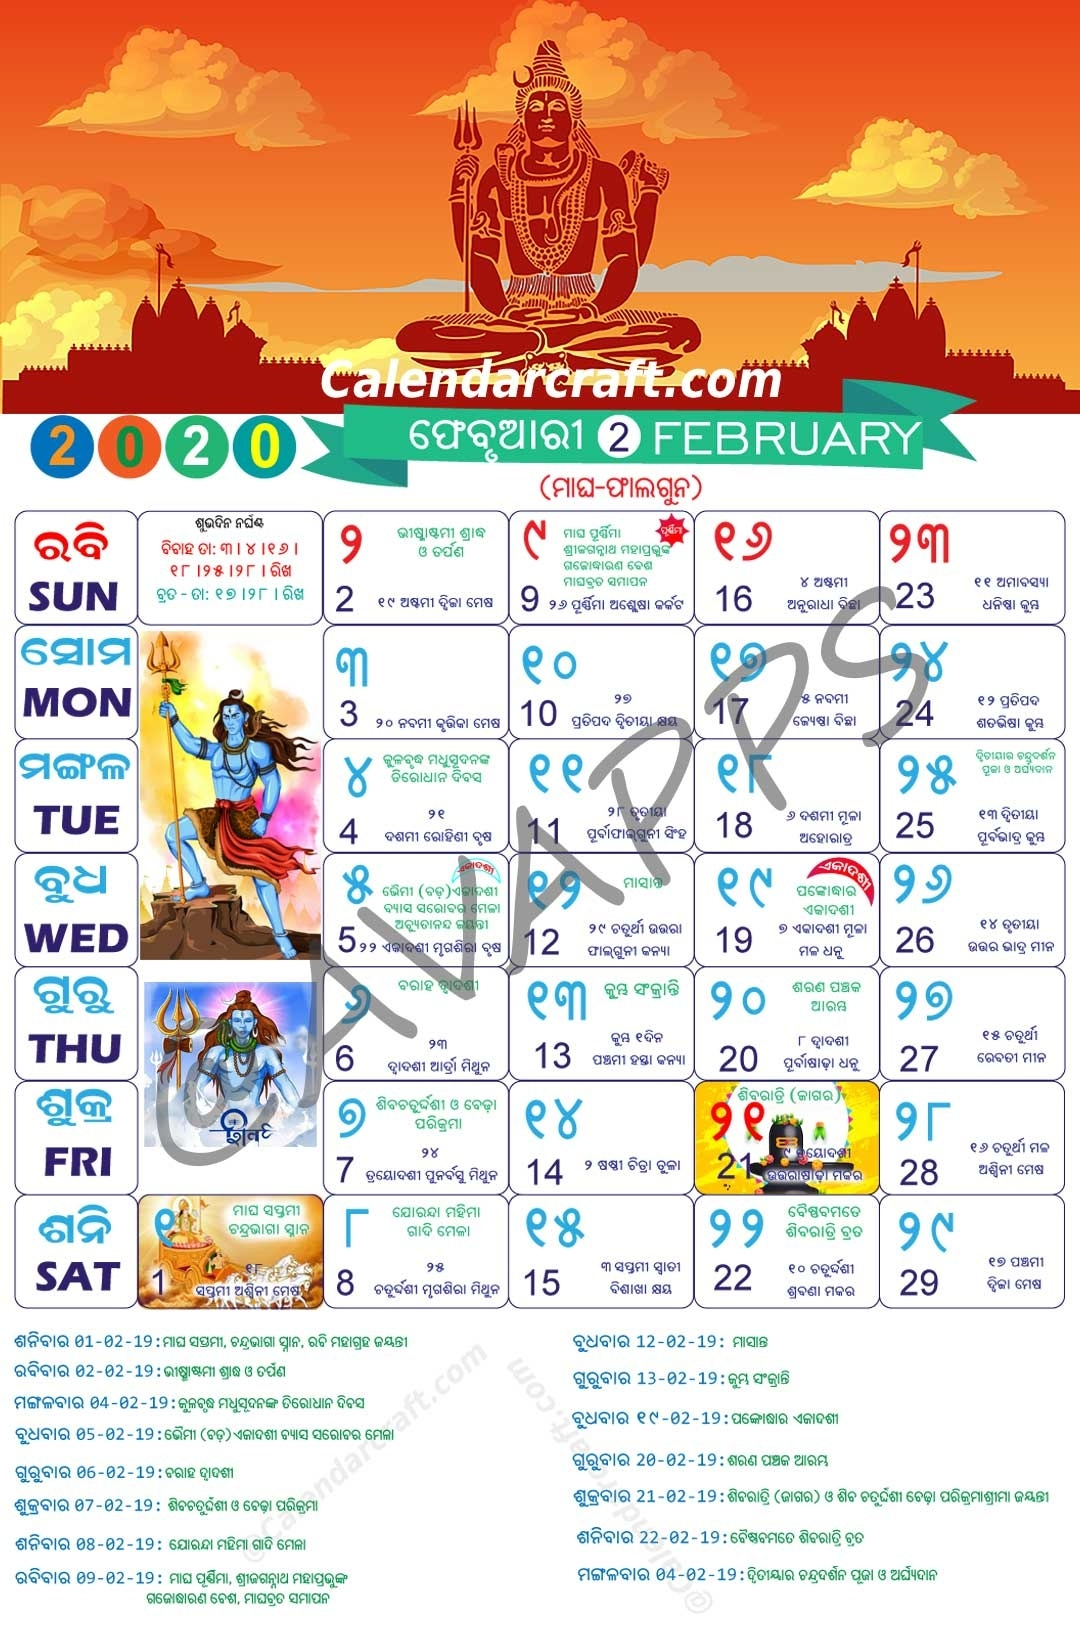 February 2020 Odia Calendar | Calendar Template Information regarding Oriya Calendar 2020 February